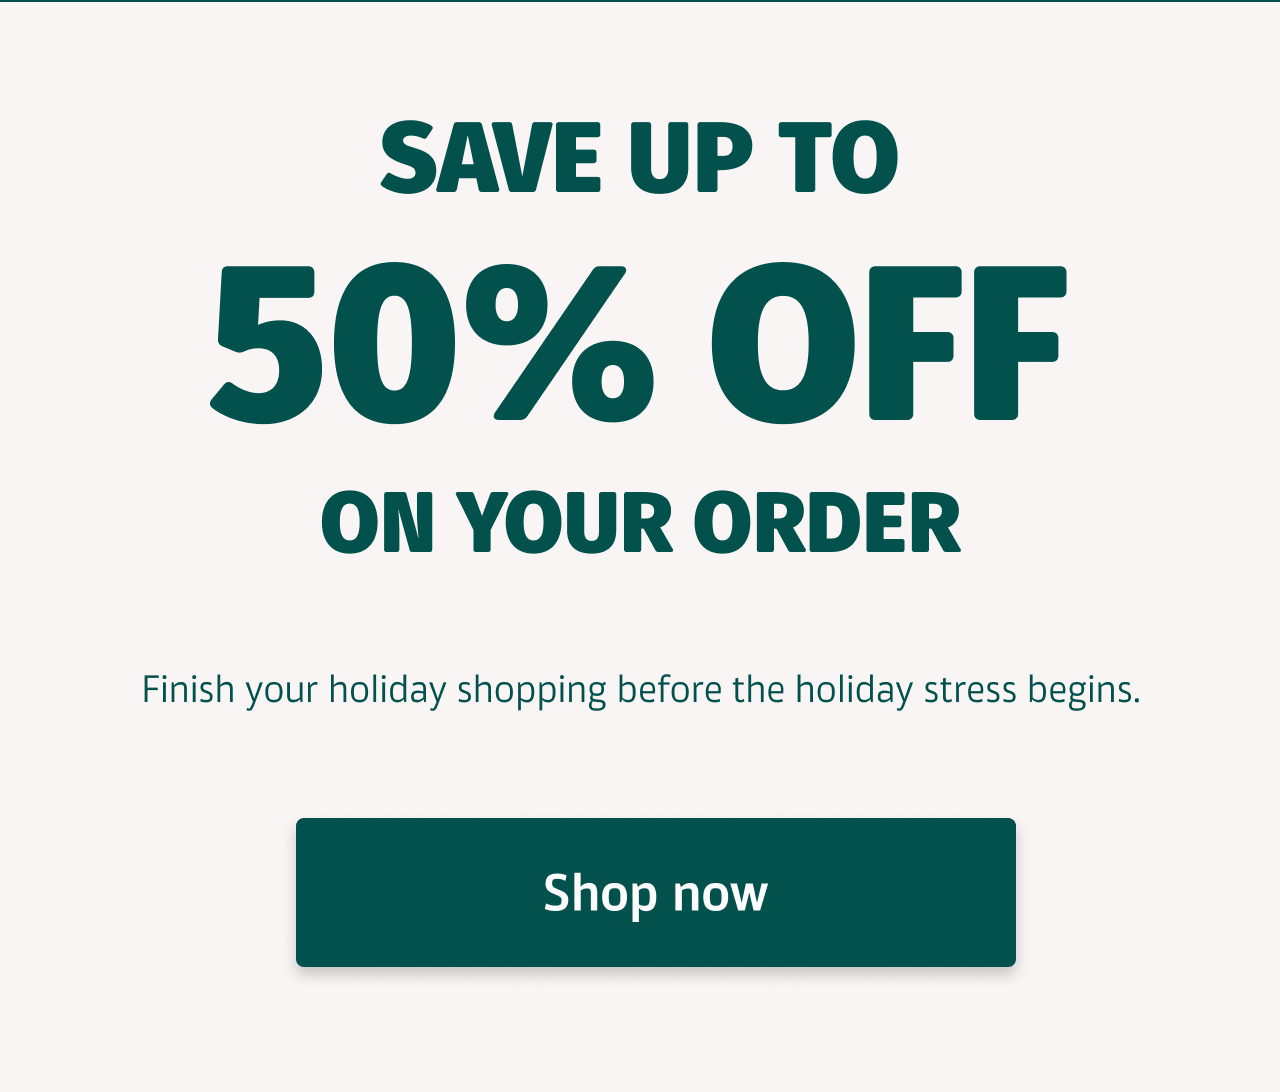 Save Up To 50% Off on Your Order; Finish your holiday shipping before the holiday stress begins. Shop now